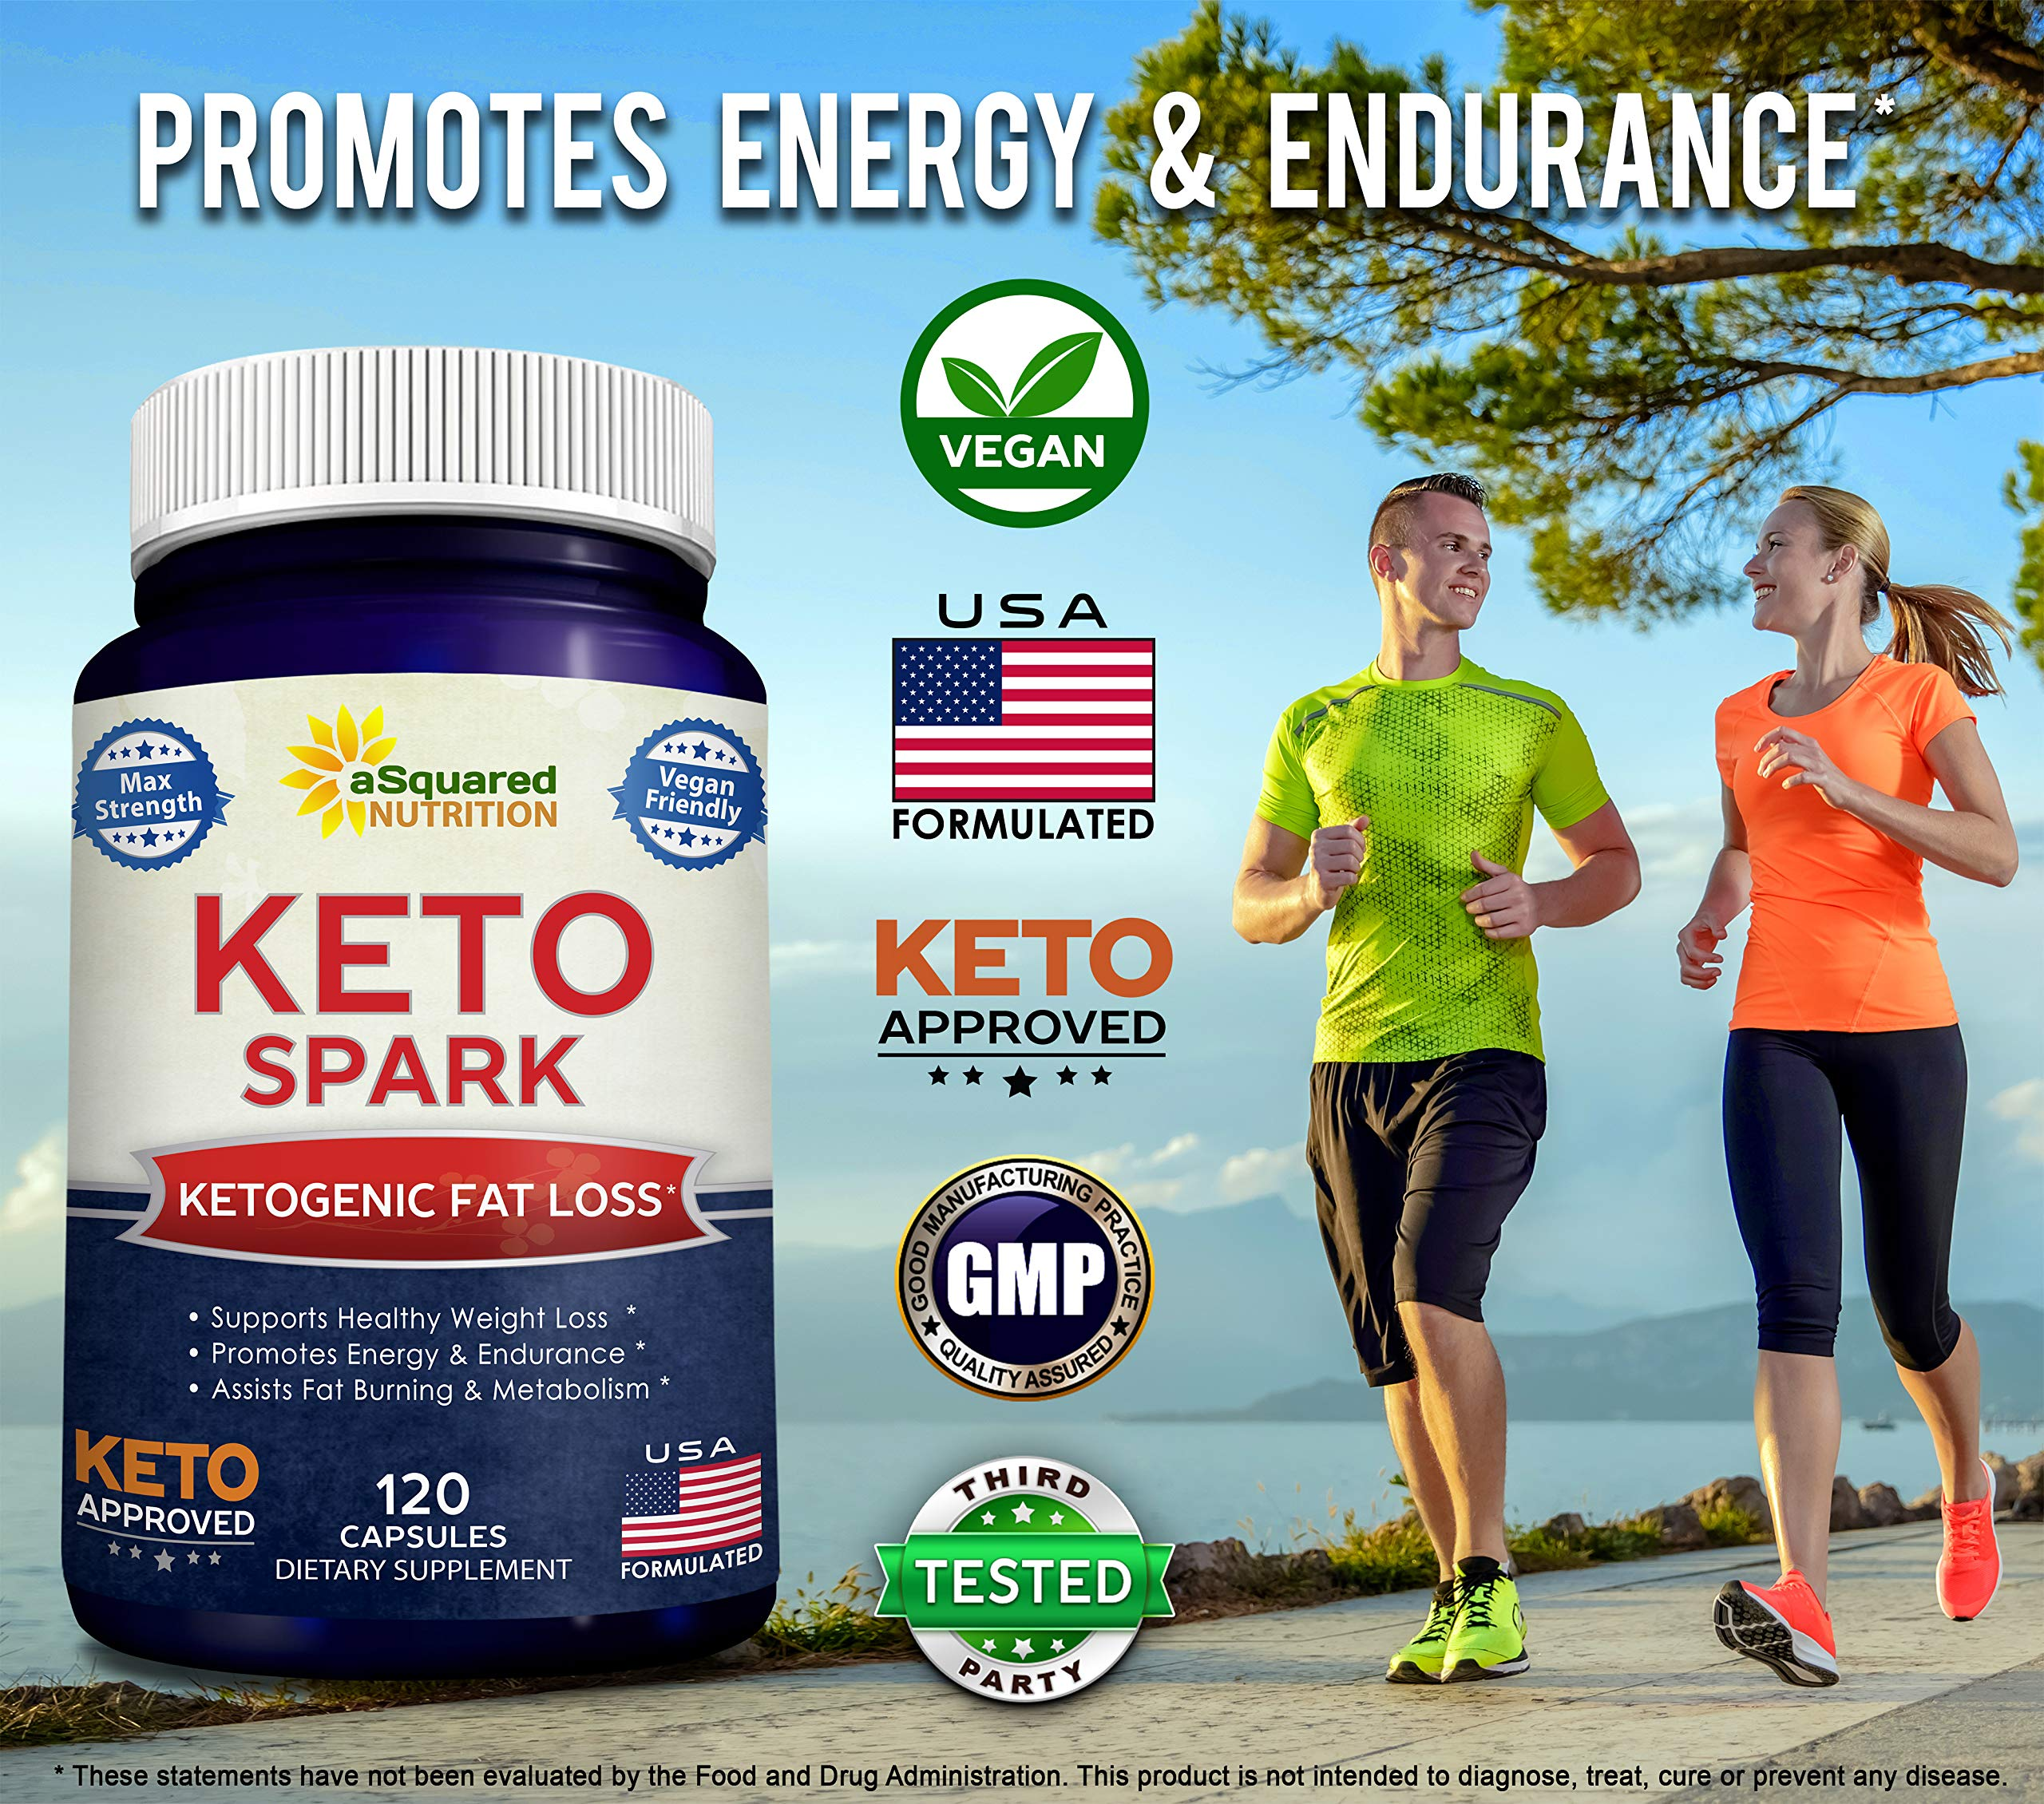 Keto Spark - Supplement for Weight Loss (120 Capsules) - Pills Approved for The Ketogenic & Paleo Diet - Helps Stay in Ketosis, Increase Energy & Focus - Caffeine & Ketones for Women & Men by aSquared Nutrition (Image #3)